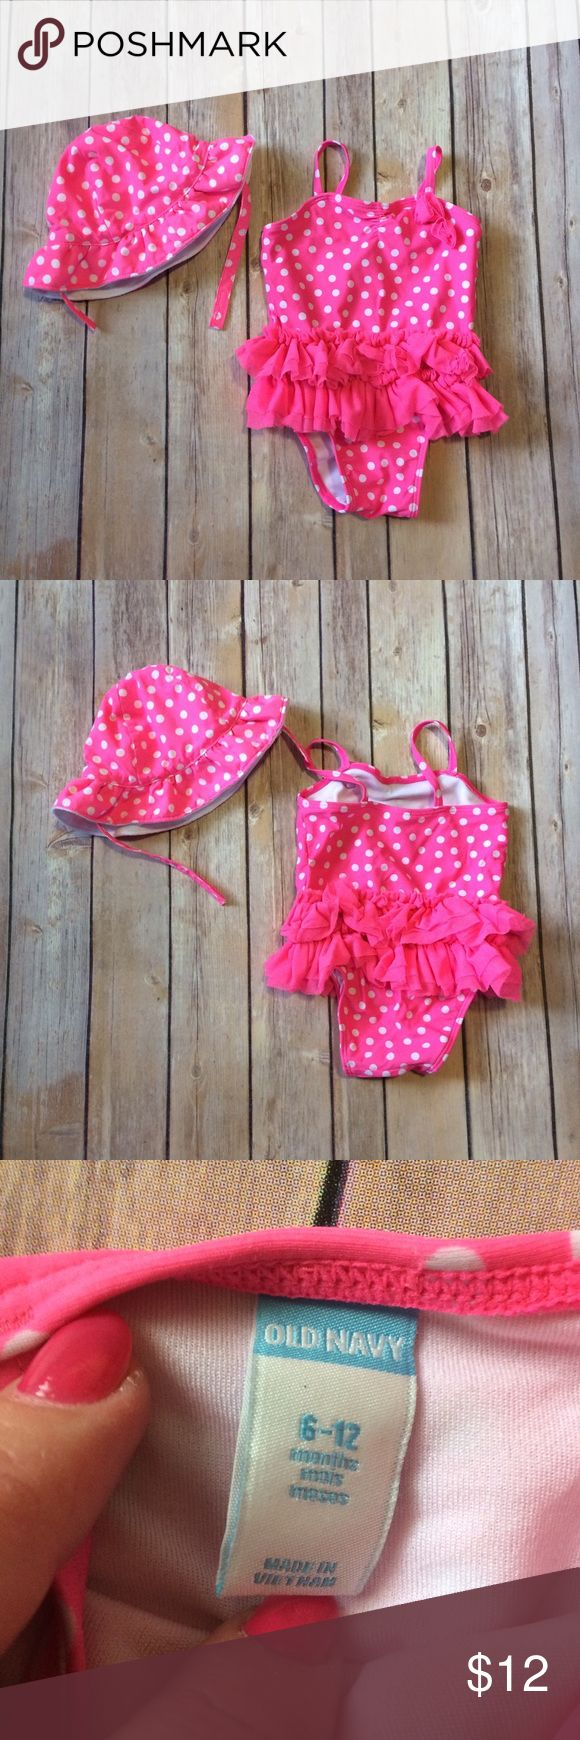 Old Navy Swimsuit & Hat Neon pink & white polka dot swimsuit and matching sun hat. Love the tulle tutu around the waist and the bows on the neckline. Swimsuit is labeled sz 6-12m & hat is labeled 3-6m, but were worn as a set. Hat is lined with terry cloth. EUC. 111708 Old Navy Swim One Piece